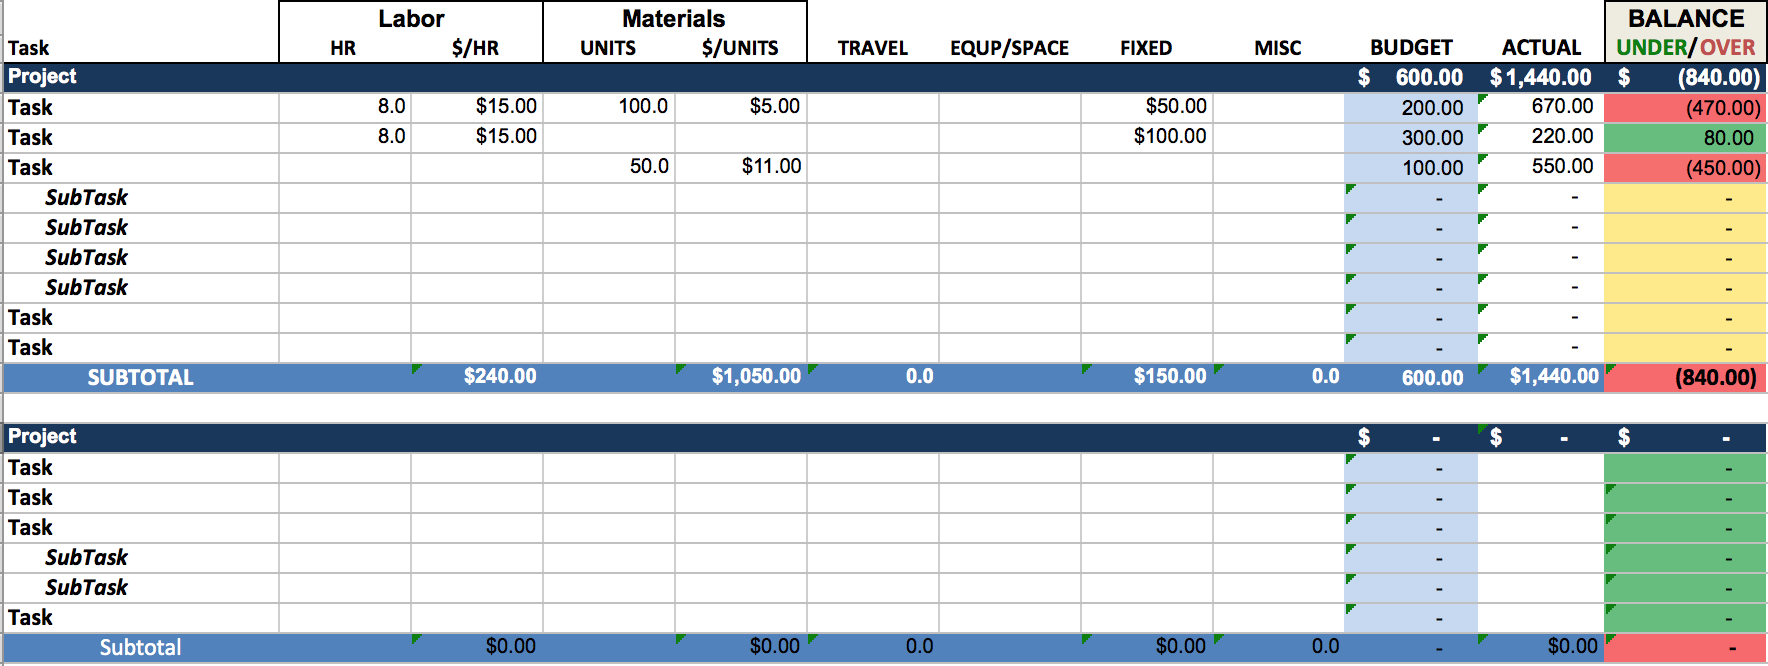 Documents Of Project Tracking Template For Excel To Project Tracking Template For Excel In Workshhet